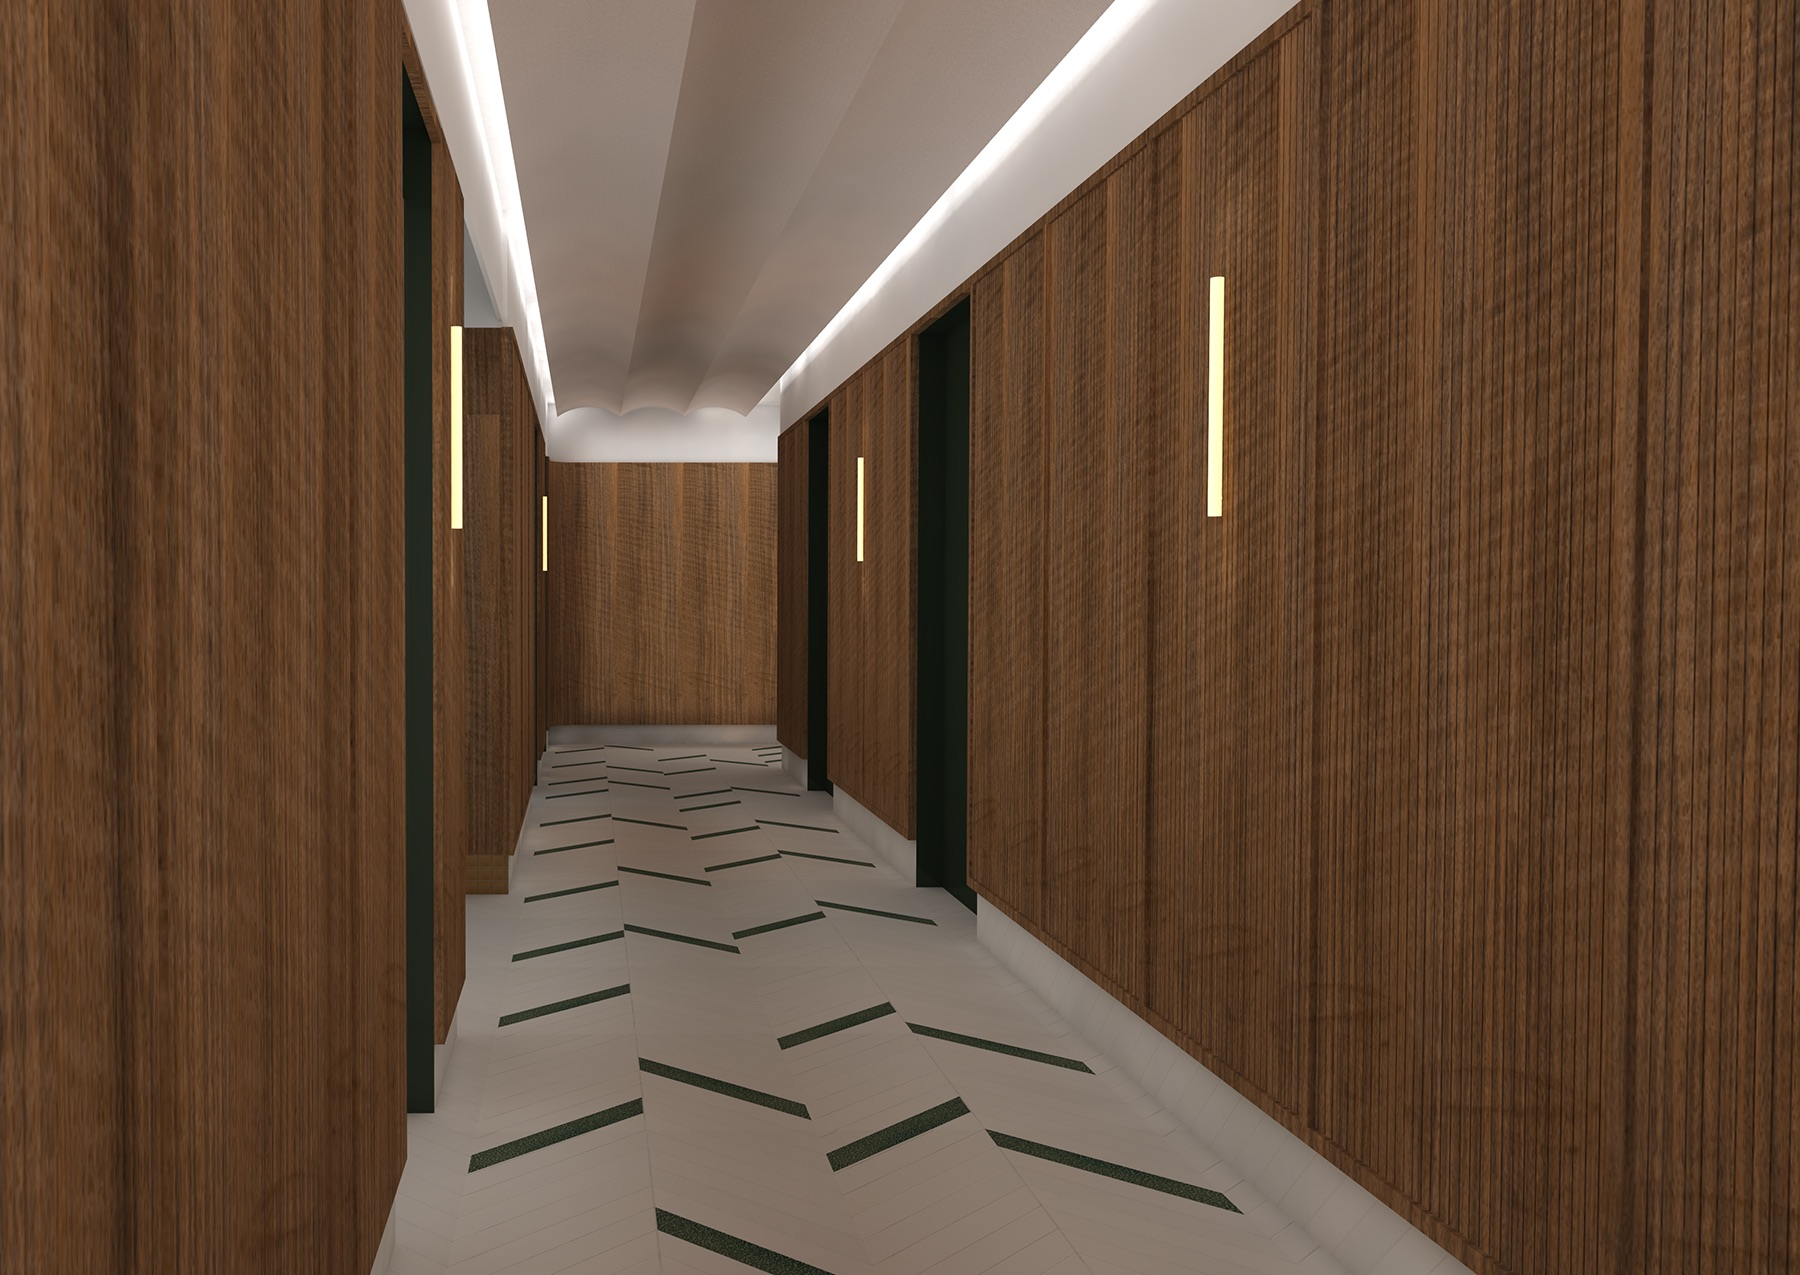 Floors are Mews tile from Mutina with Heath Ceramics tile, walnut walls panels, acoustical felt ceiling